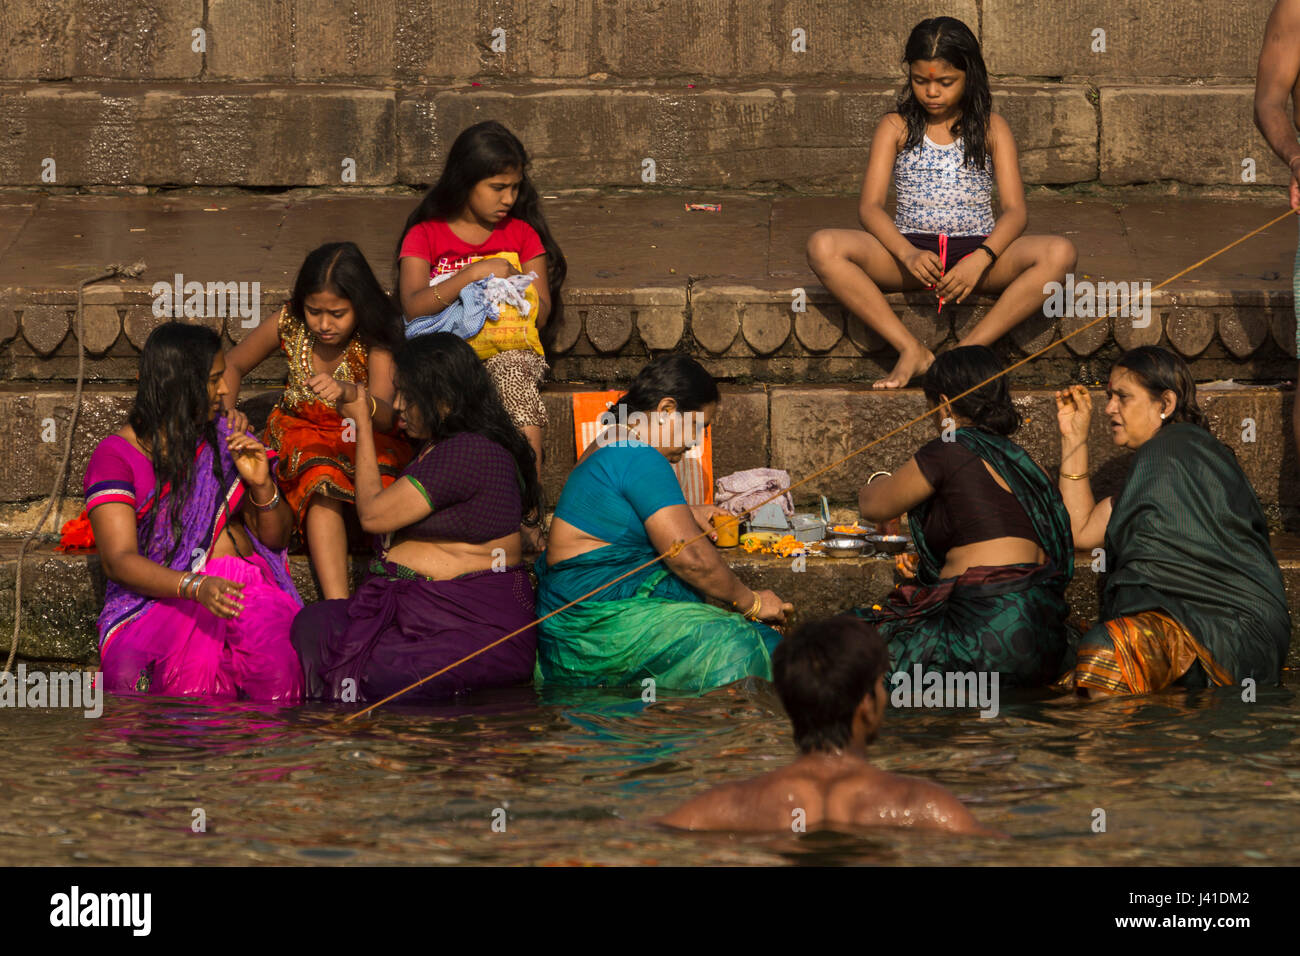 0abd78a16b9 Women bathing in the sacred waters of the Ganges river. Varanasi, India -  Stock